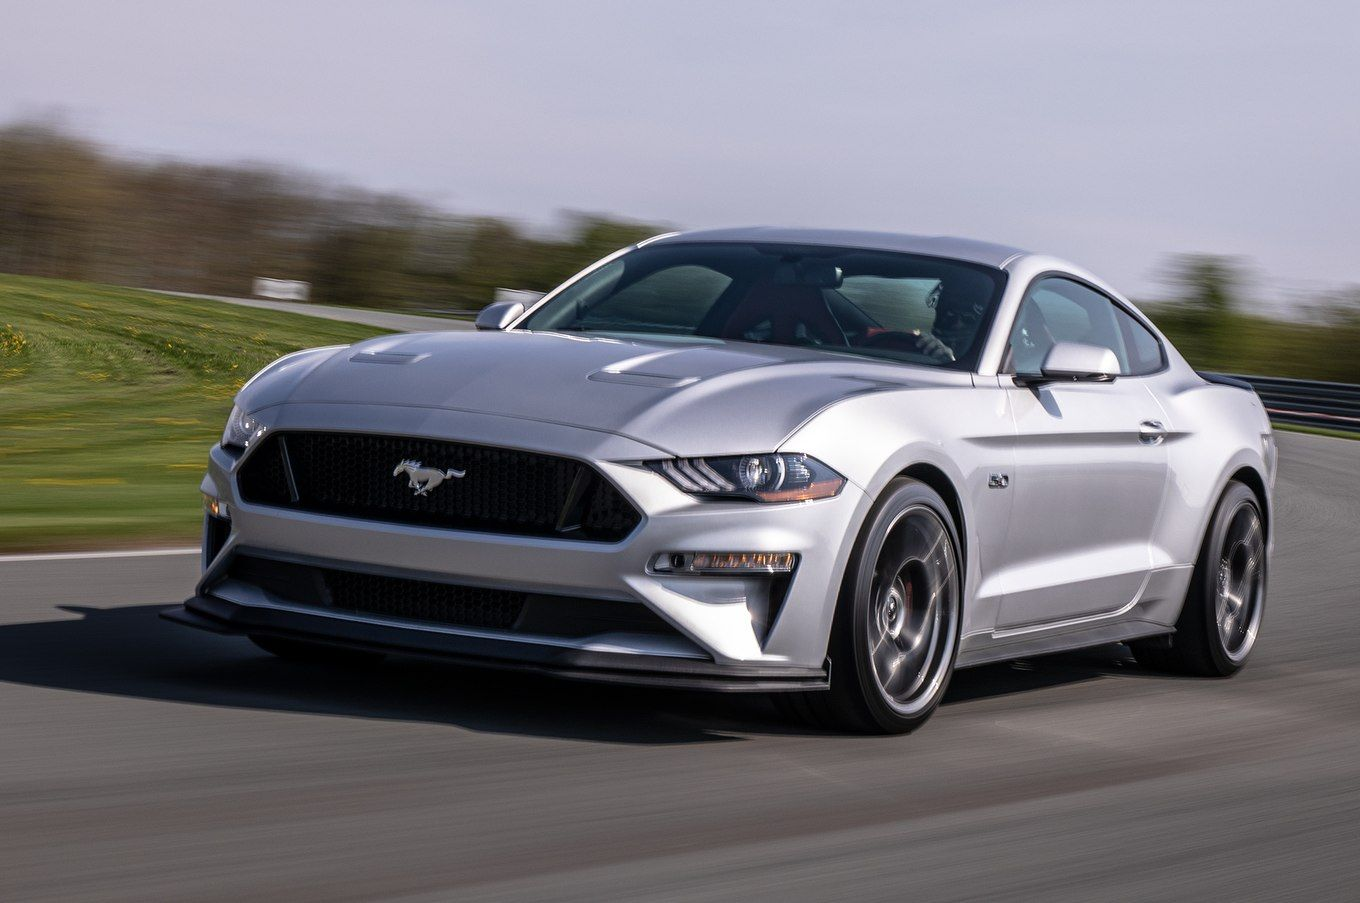 2018 Ford Mustang Gt Performance Pack 2 Front Three Quarter In